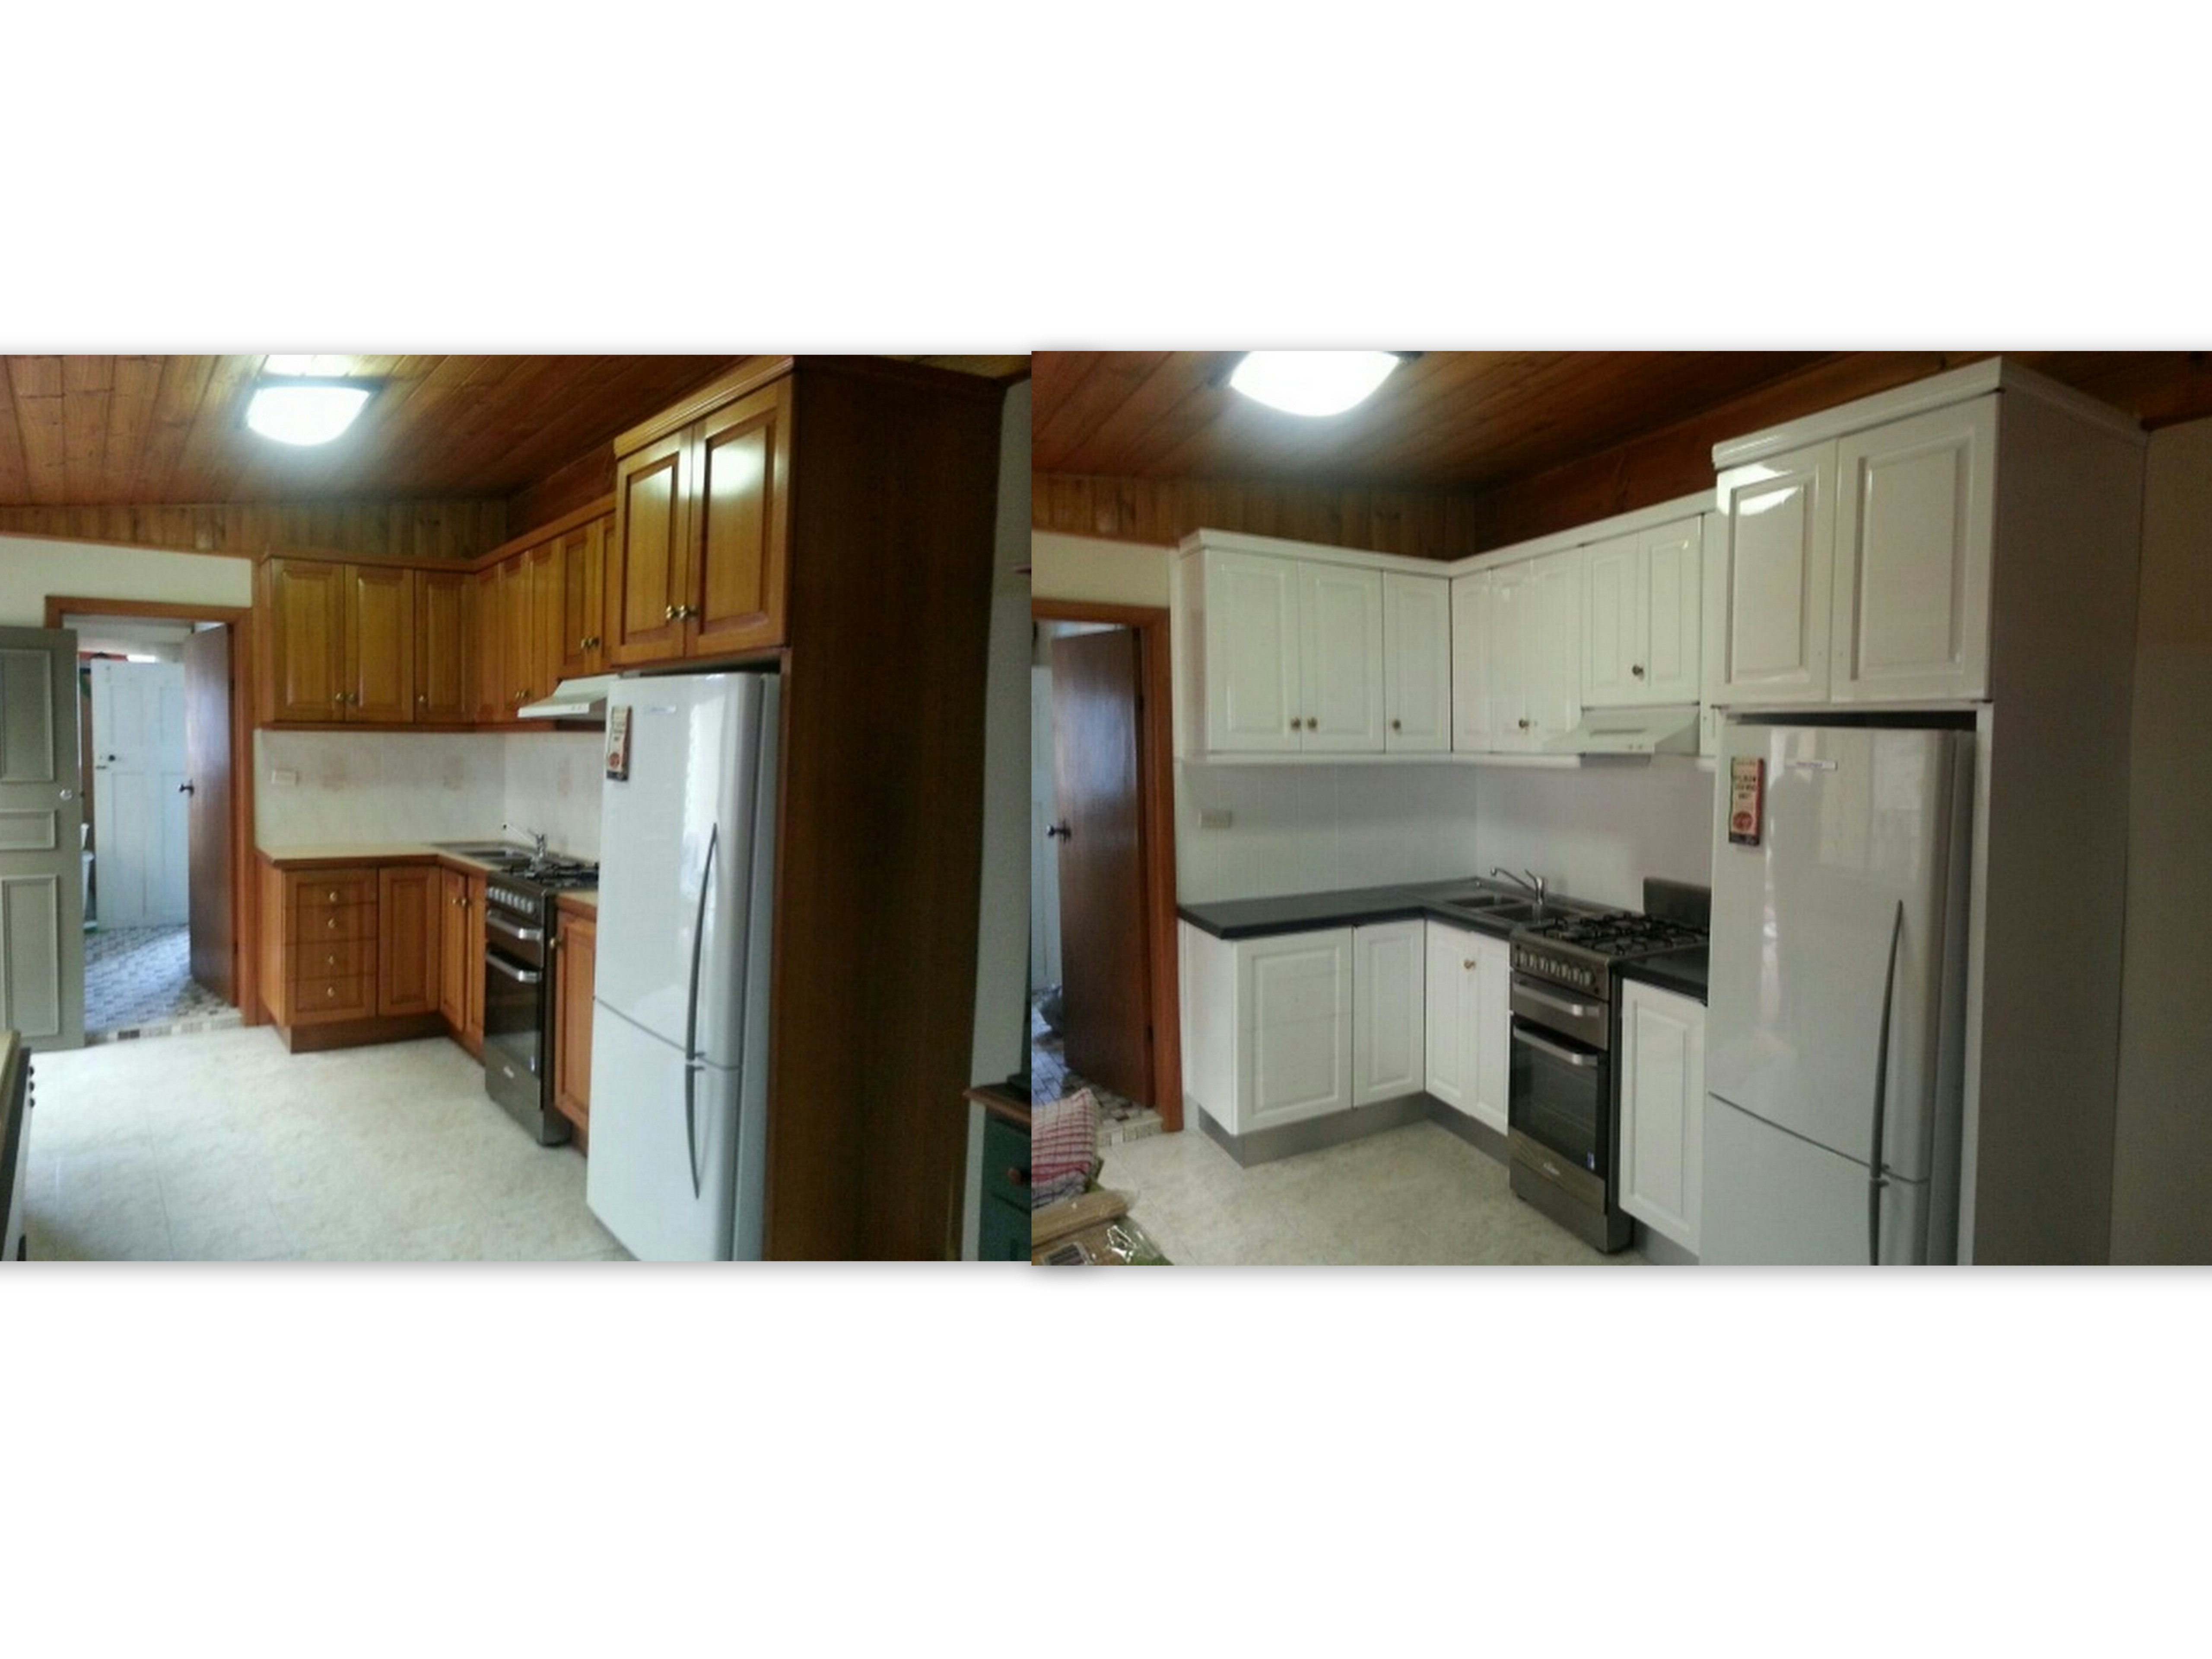 Resurfacing Kitchen Cabinets Sydney | All Class Resurfacing